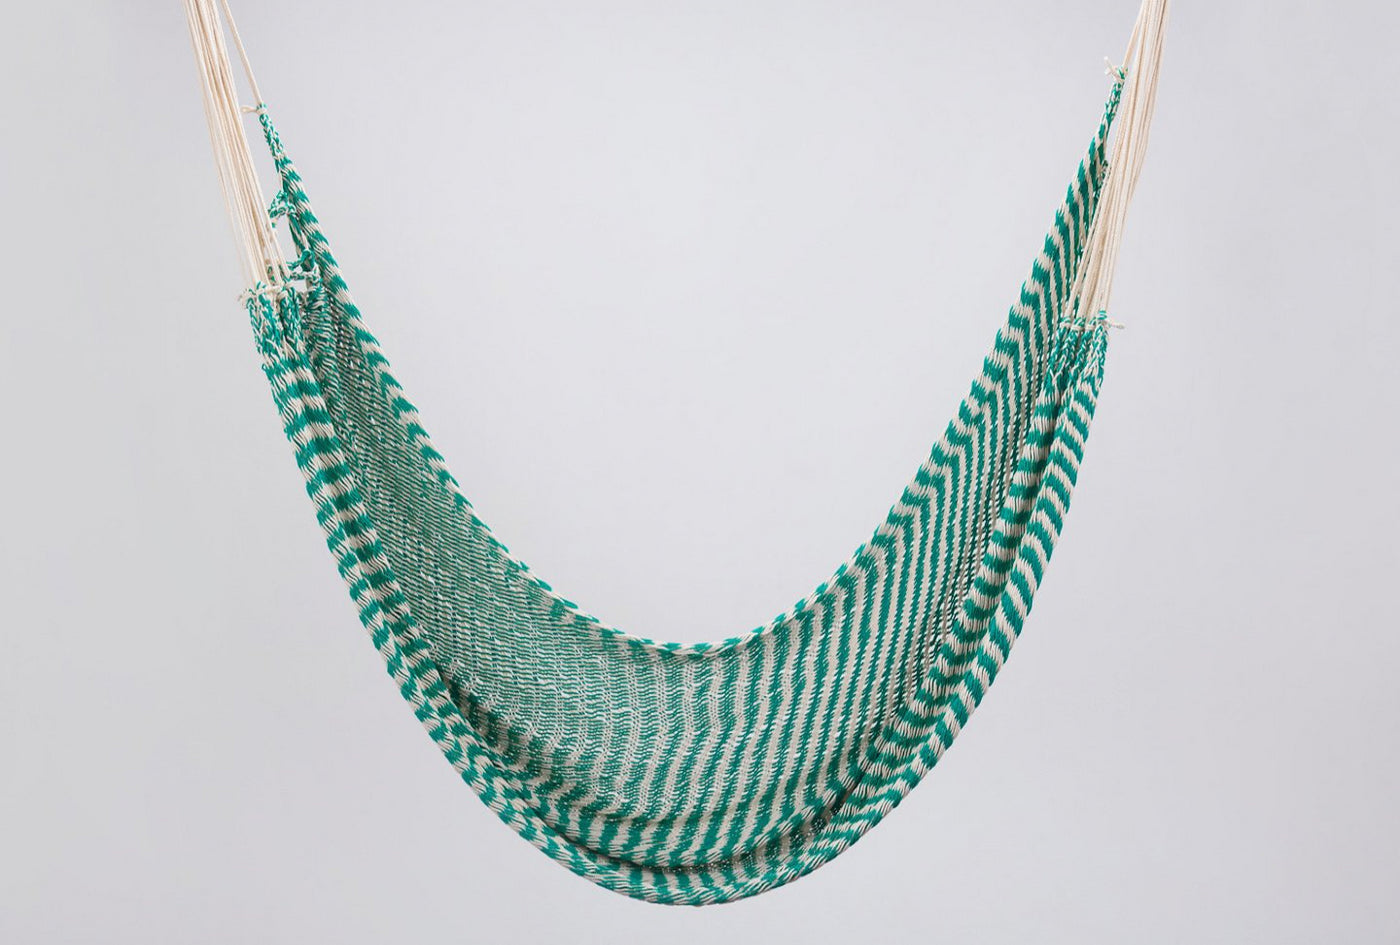 Camping Hammock Natural and Green Stripes Personal Handmade High Quality